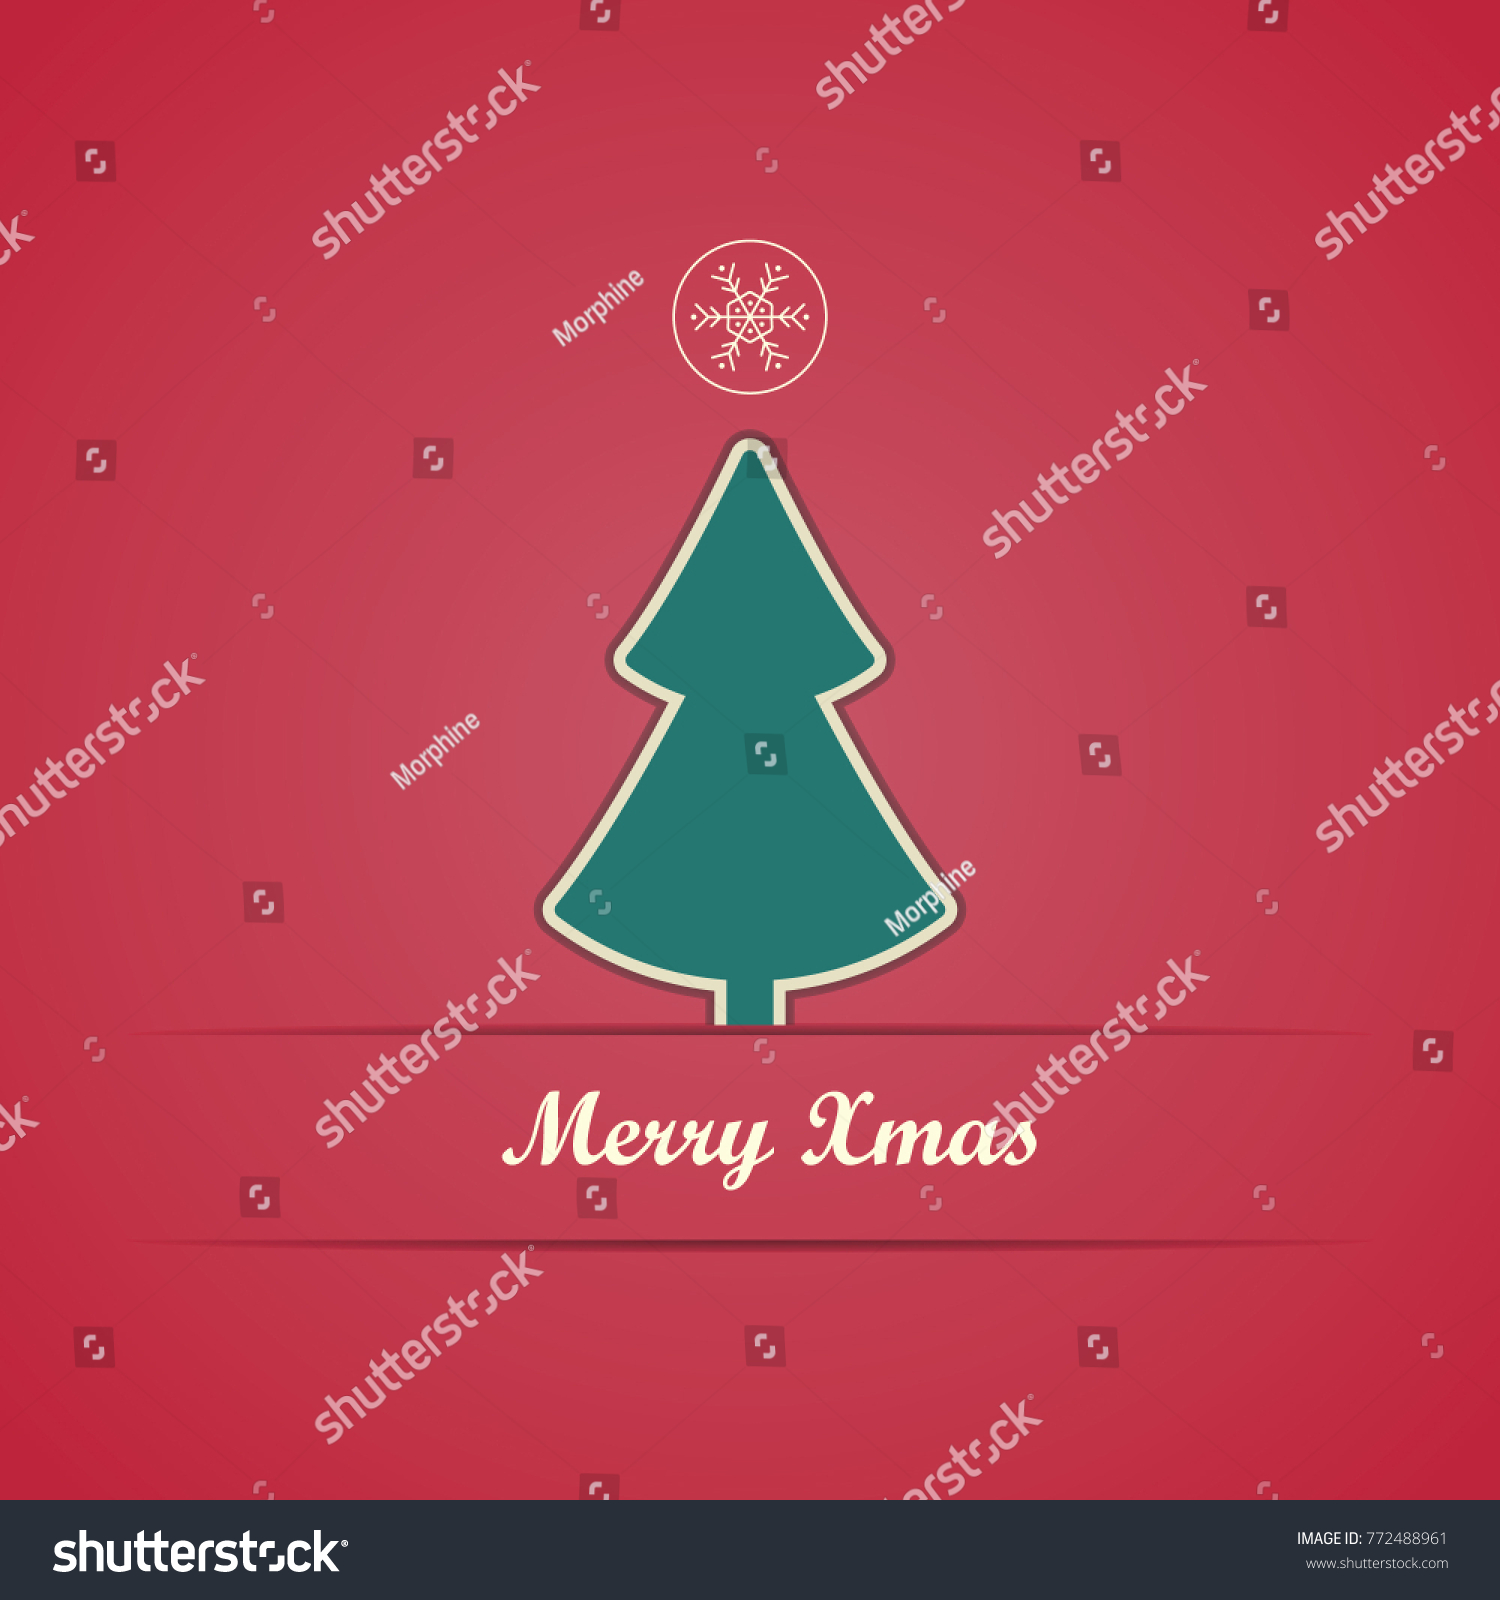 Simple Christmas Greeting Card On Red Stock Vector 772488961